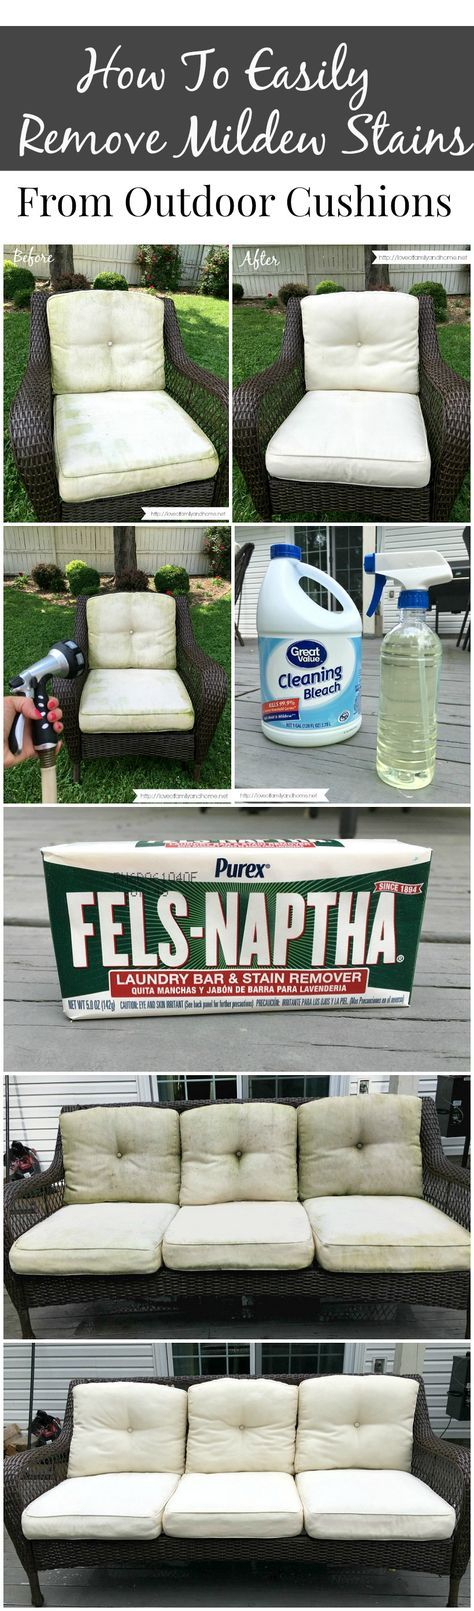 Easily Remove Mildew Stains from Outdoor Cushions: Spray solution of 75% bleach and 25% water onto the mildewed spots. Waited about 10 minutes and then spray them again. Next, take a bar of Fels Naptha soap and rub it all over the cushions and rub and scrubbed with a scrub brush.